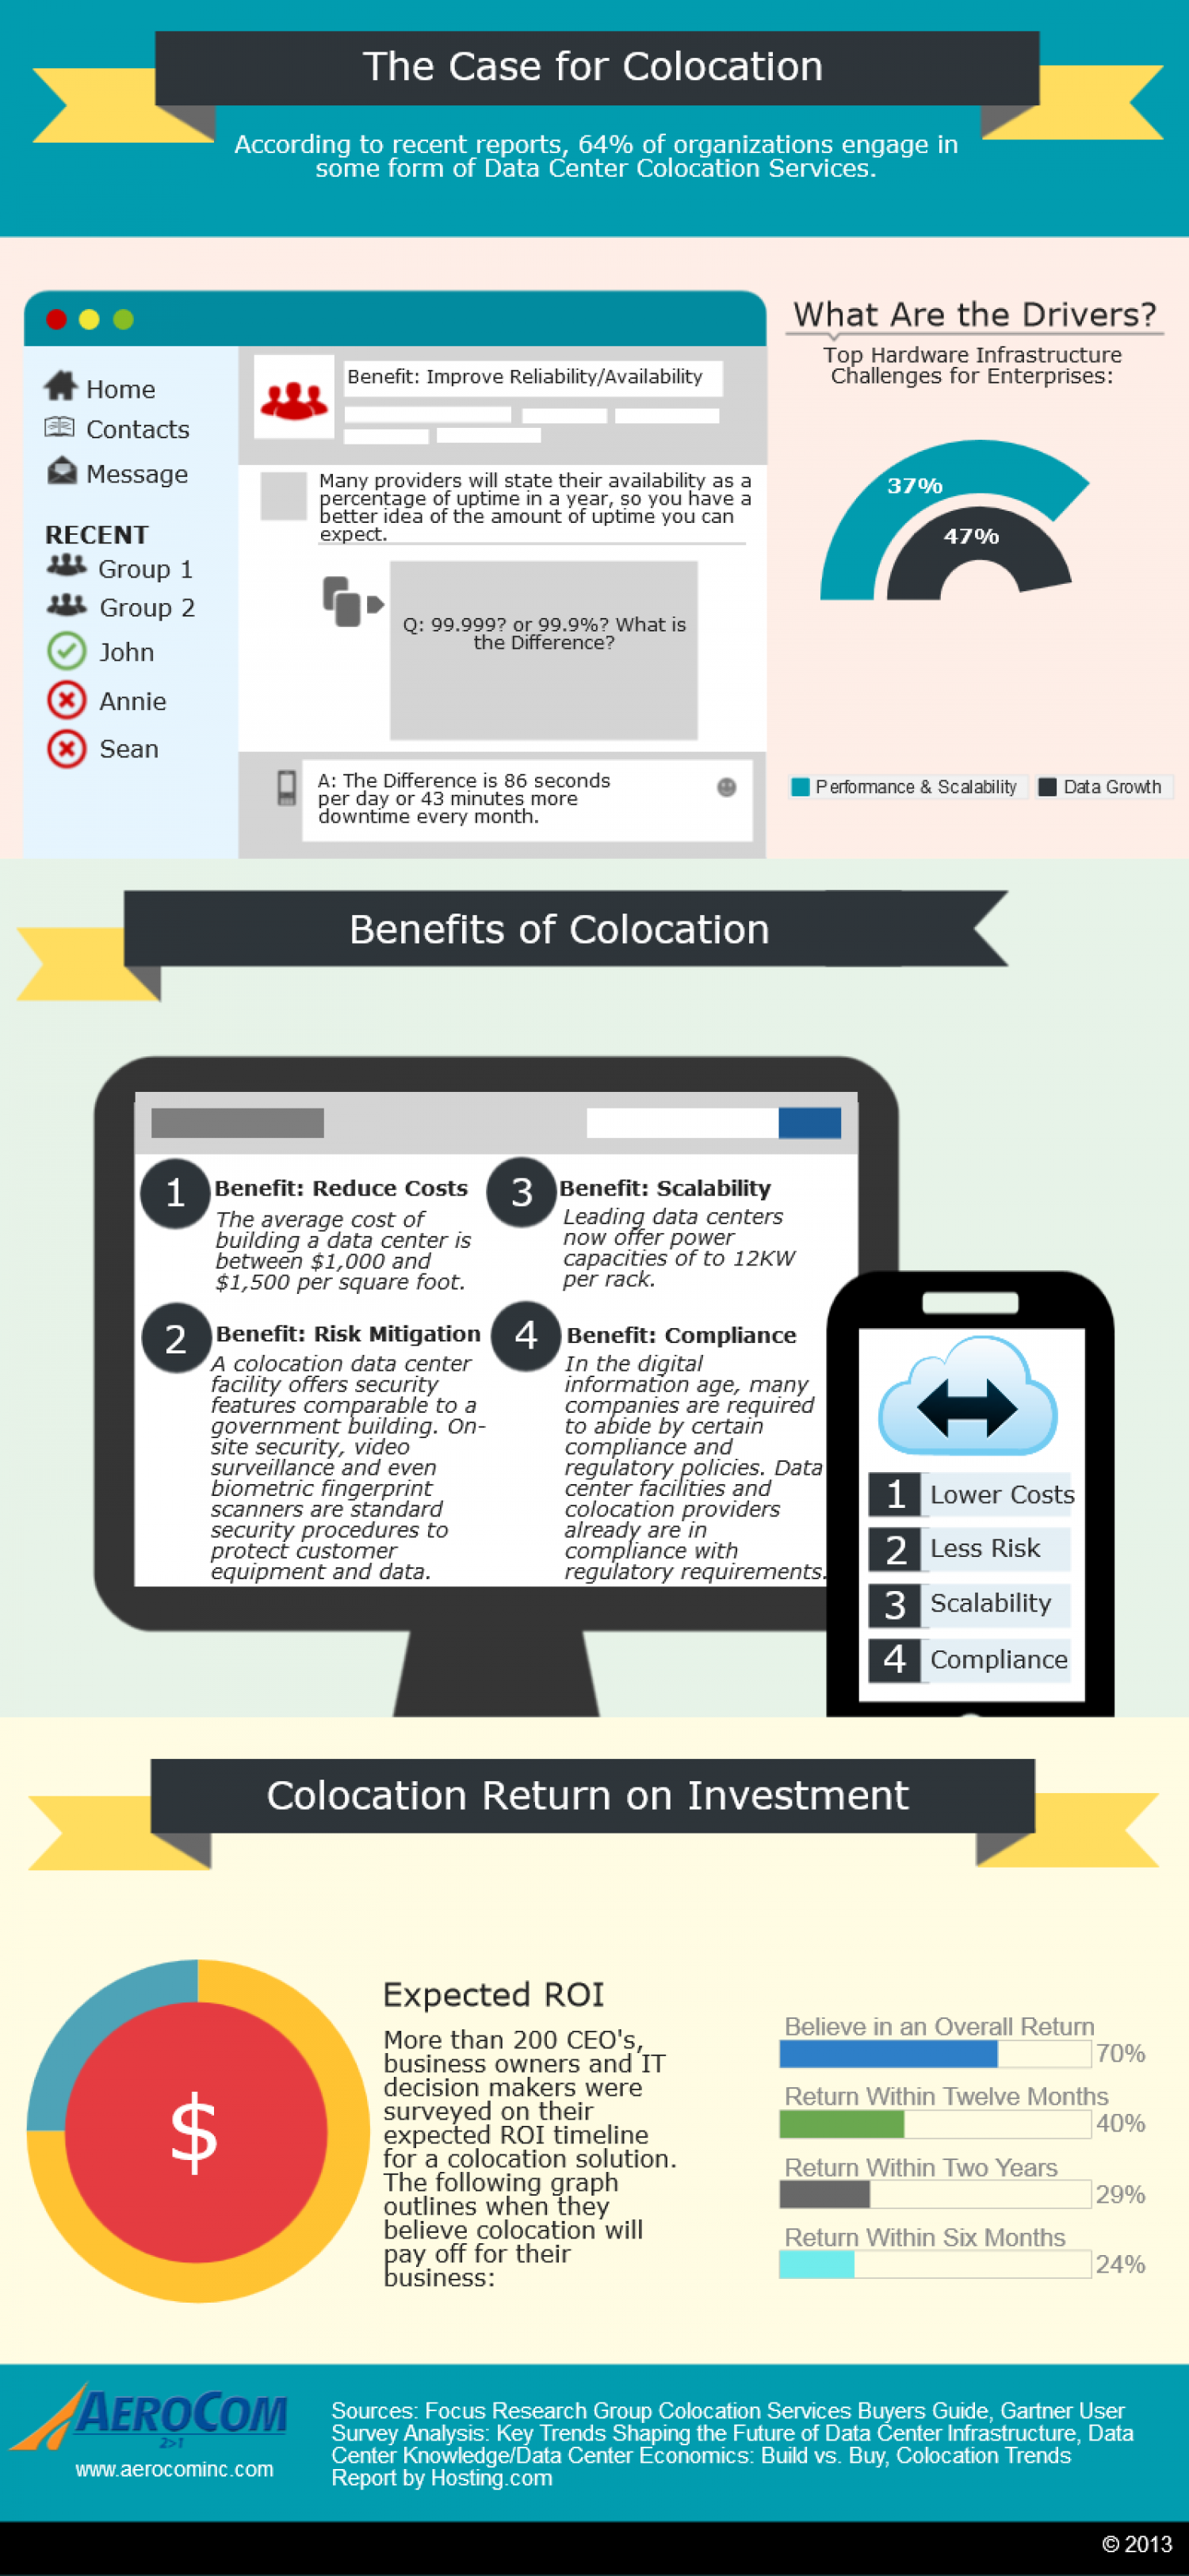 The Case for Colocation Infographic